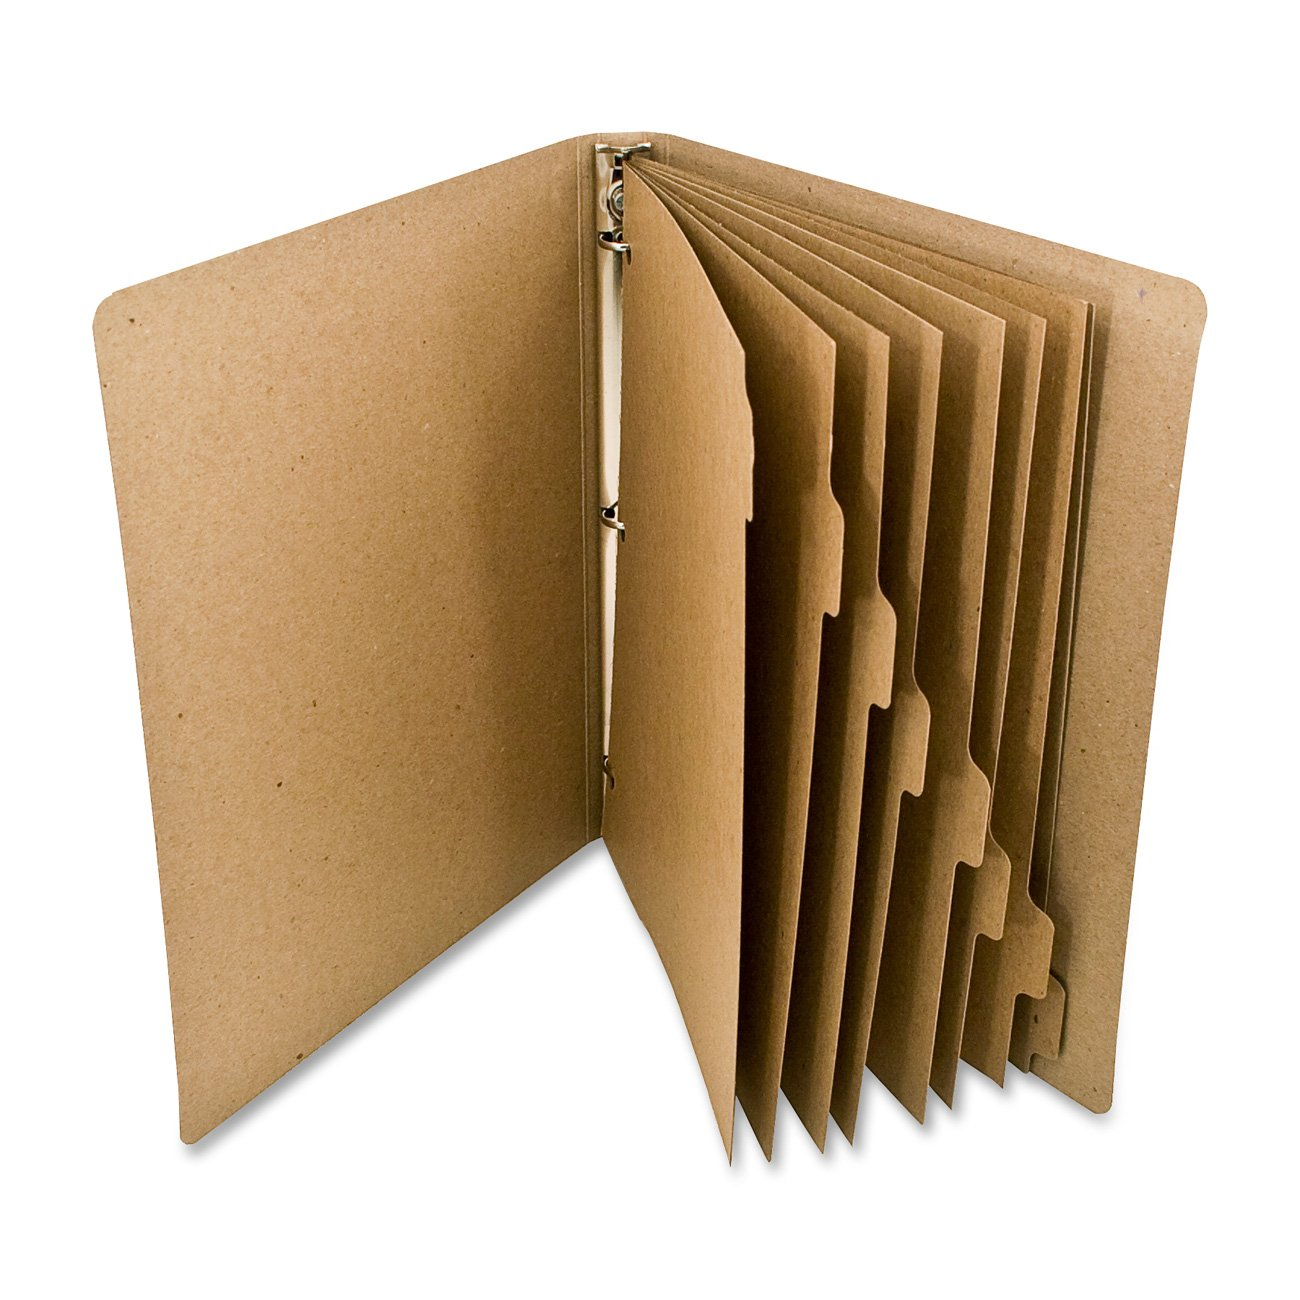 Guided Products ReTab 8 Tab Divider Inserts (GDP00018)